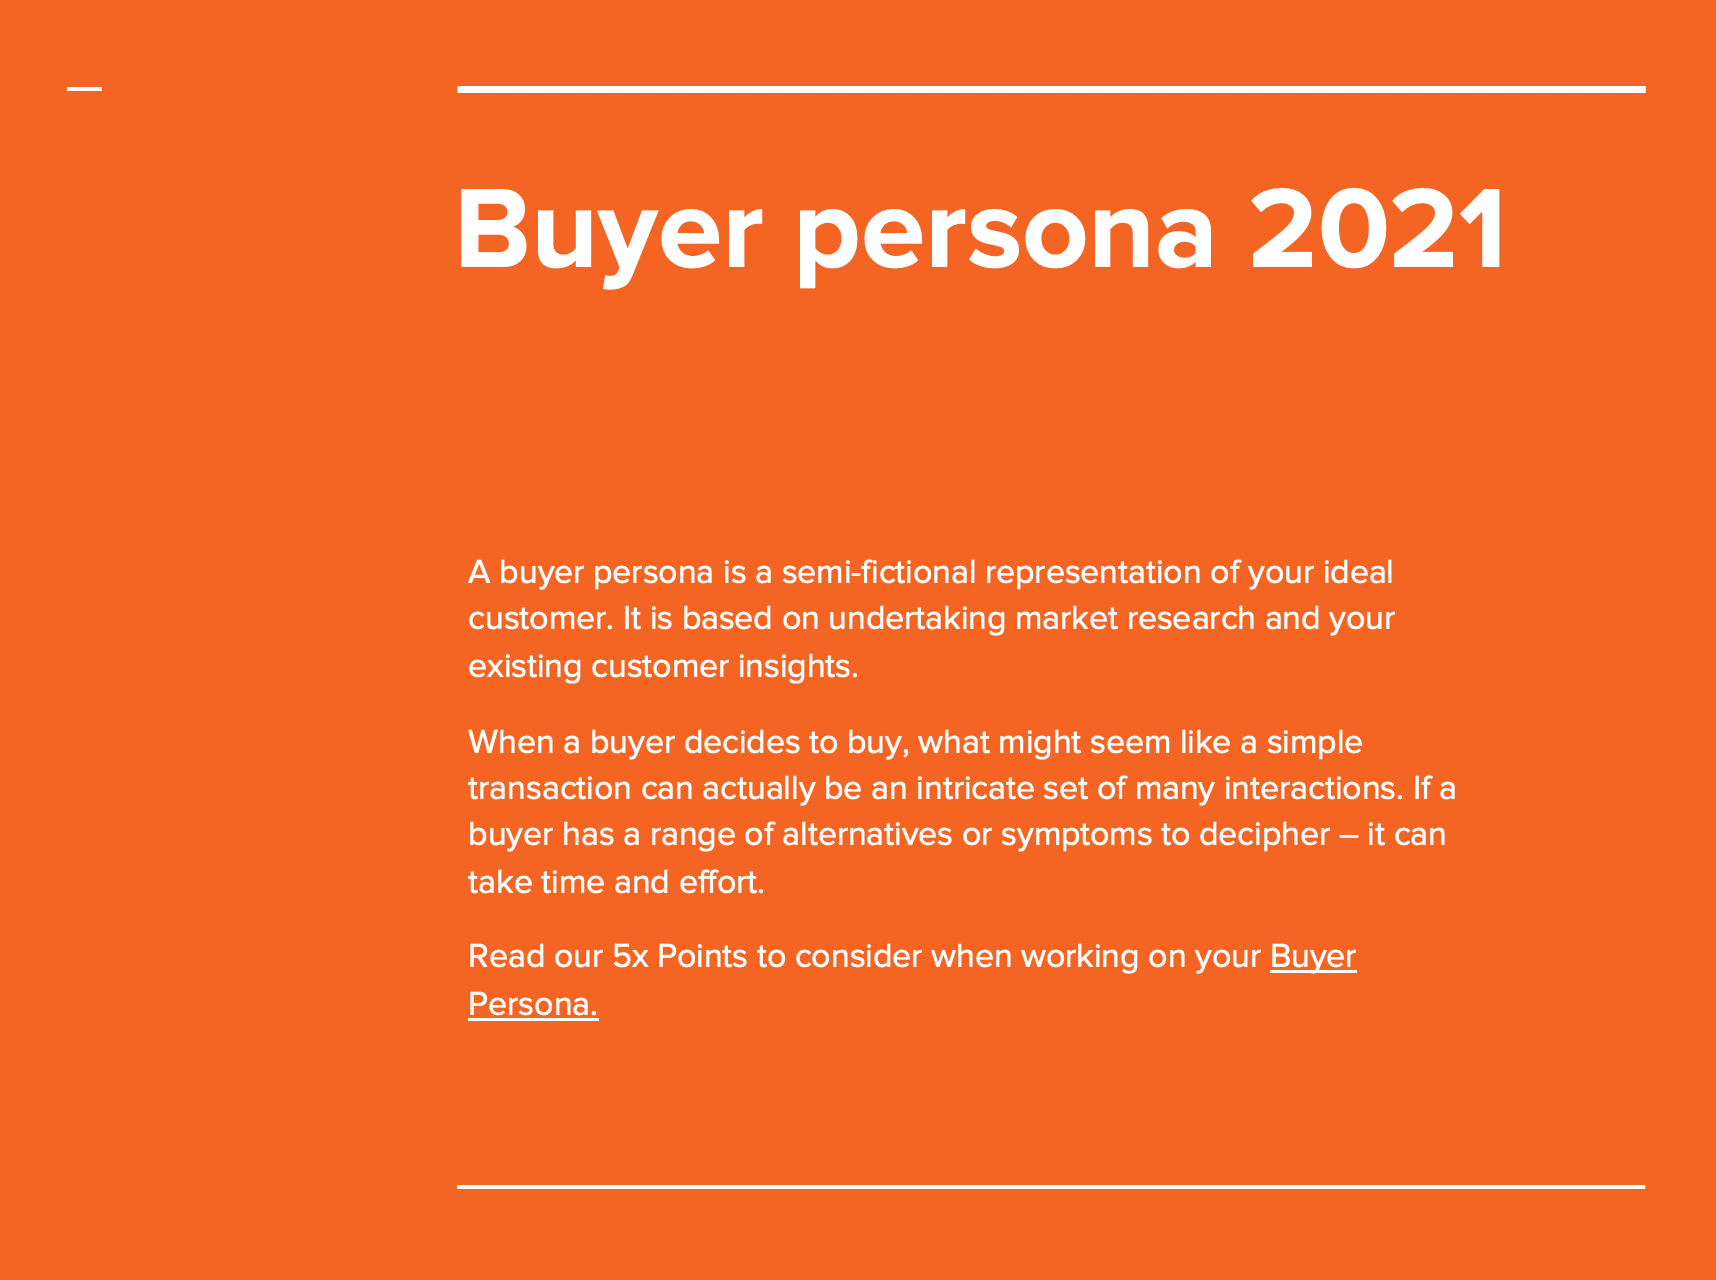 Buyer Persona presentation B2B SaaS kENNEDY grOUP ab